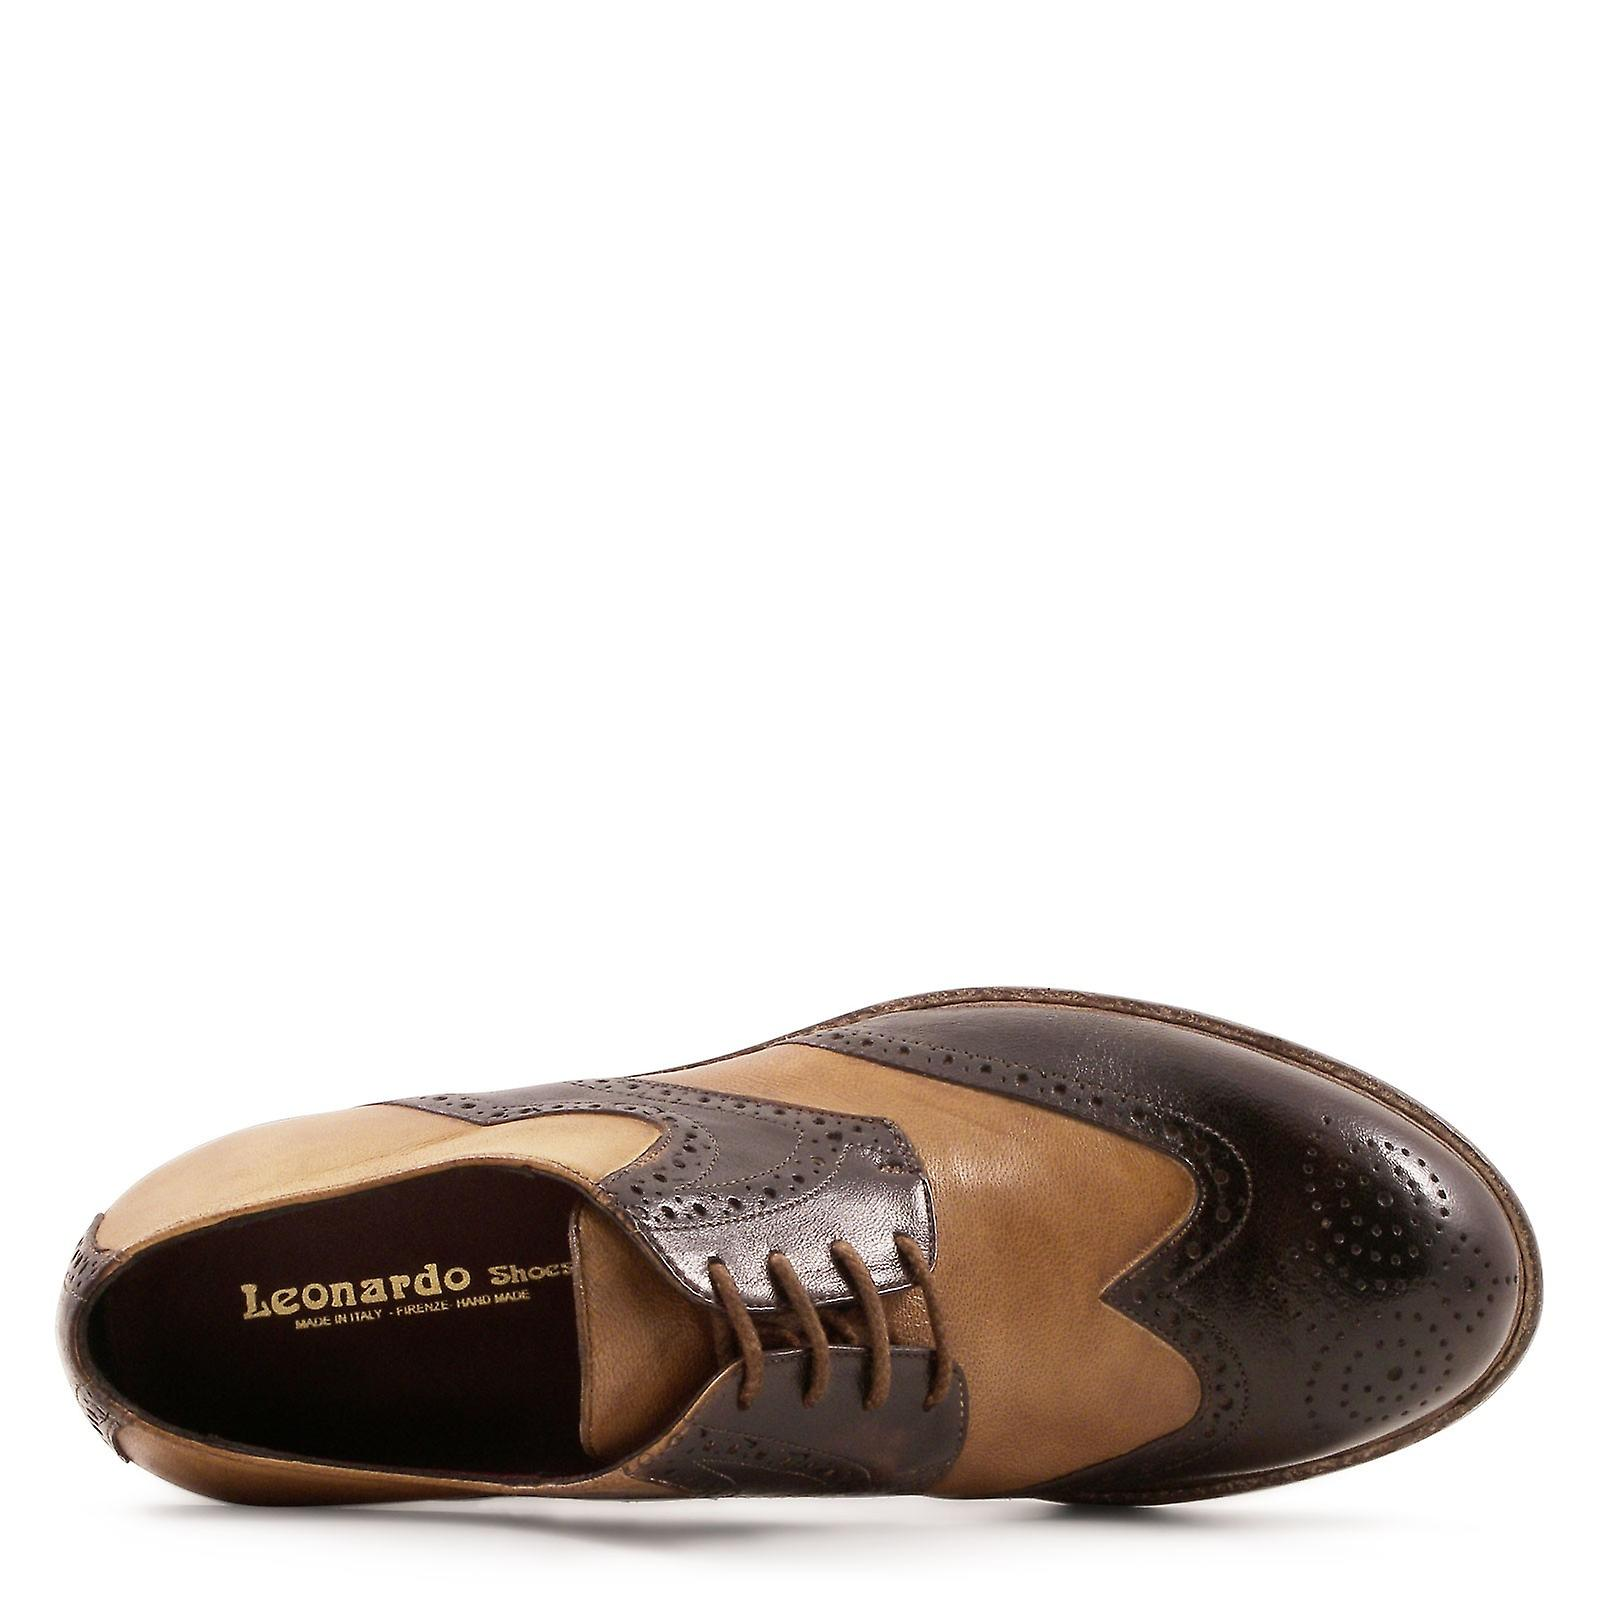 Handmade shoes for leather brogue italian in men 11wT8q